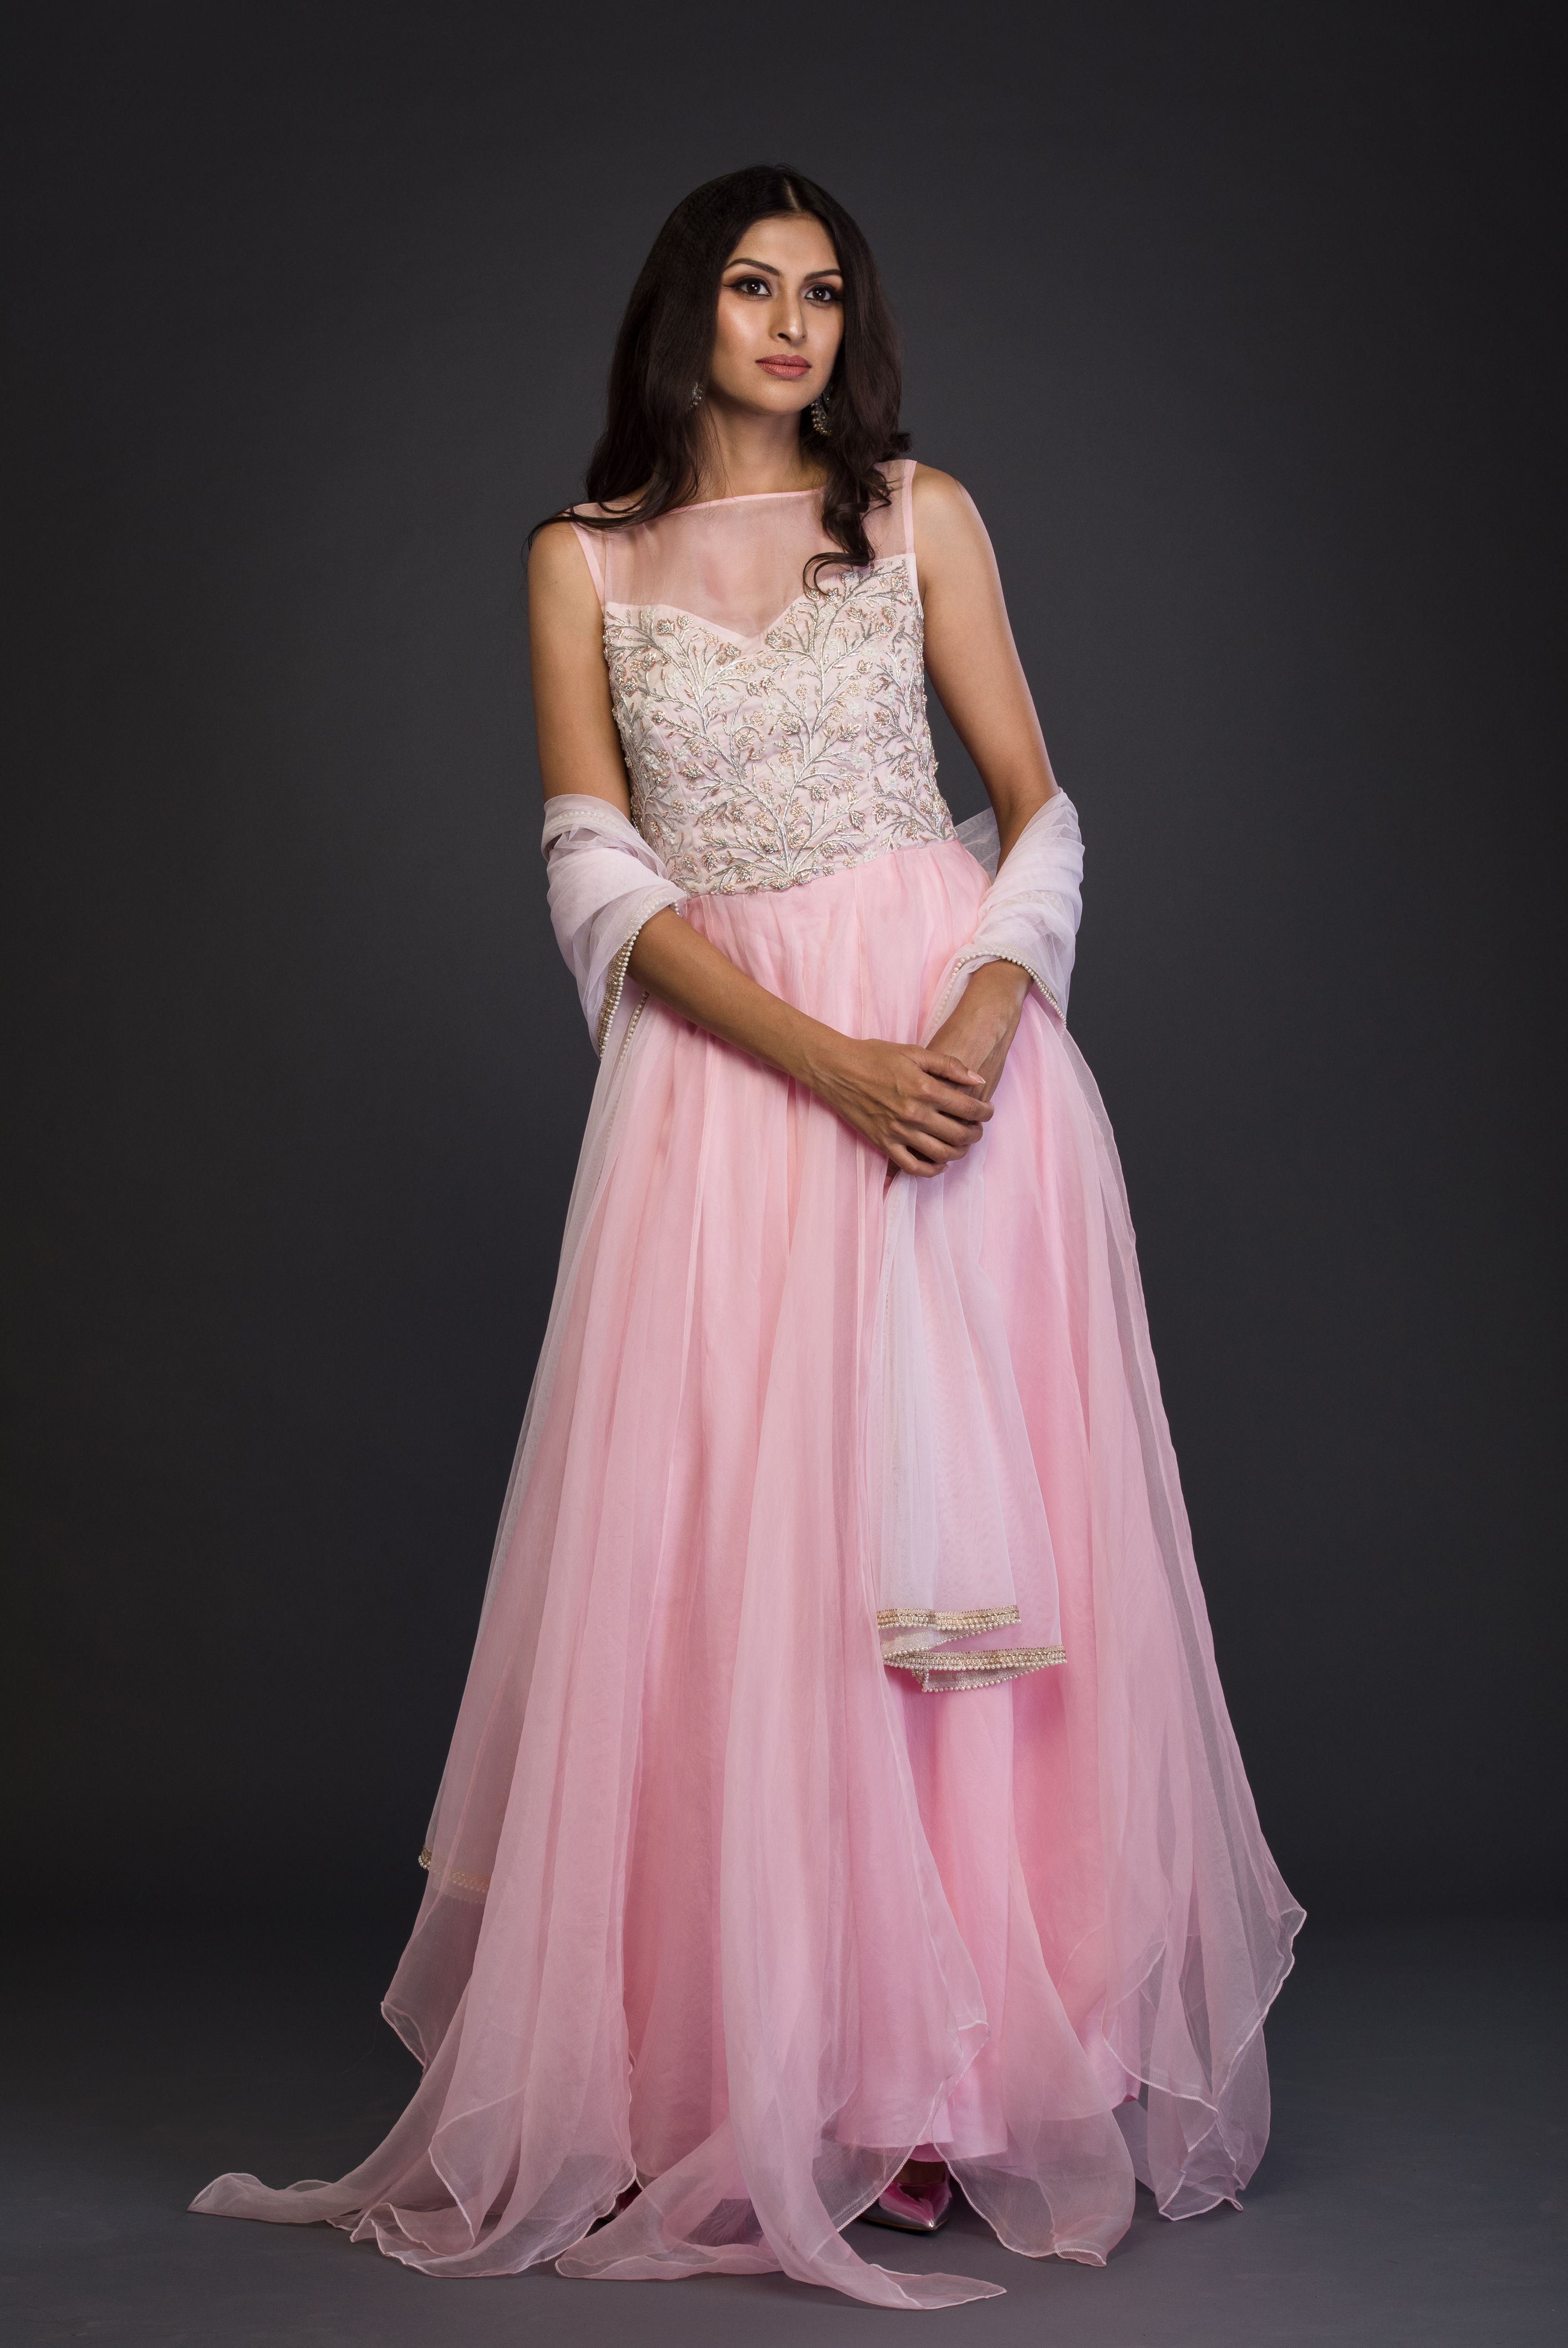 The Blush Pink Organza Anarkali FRONT